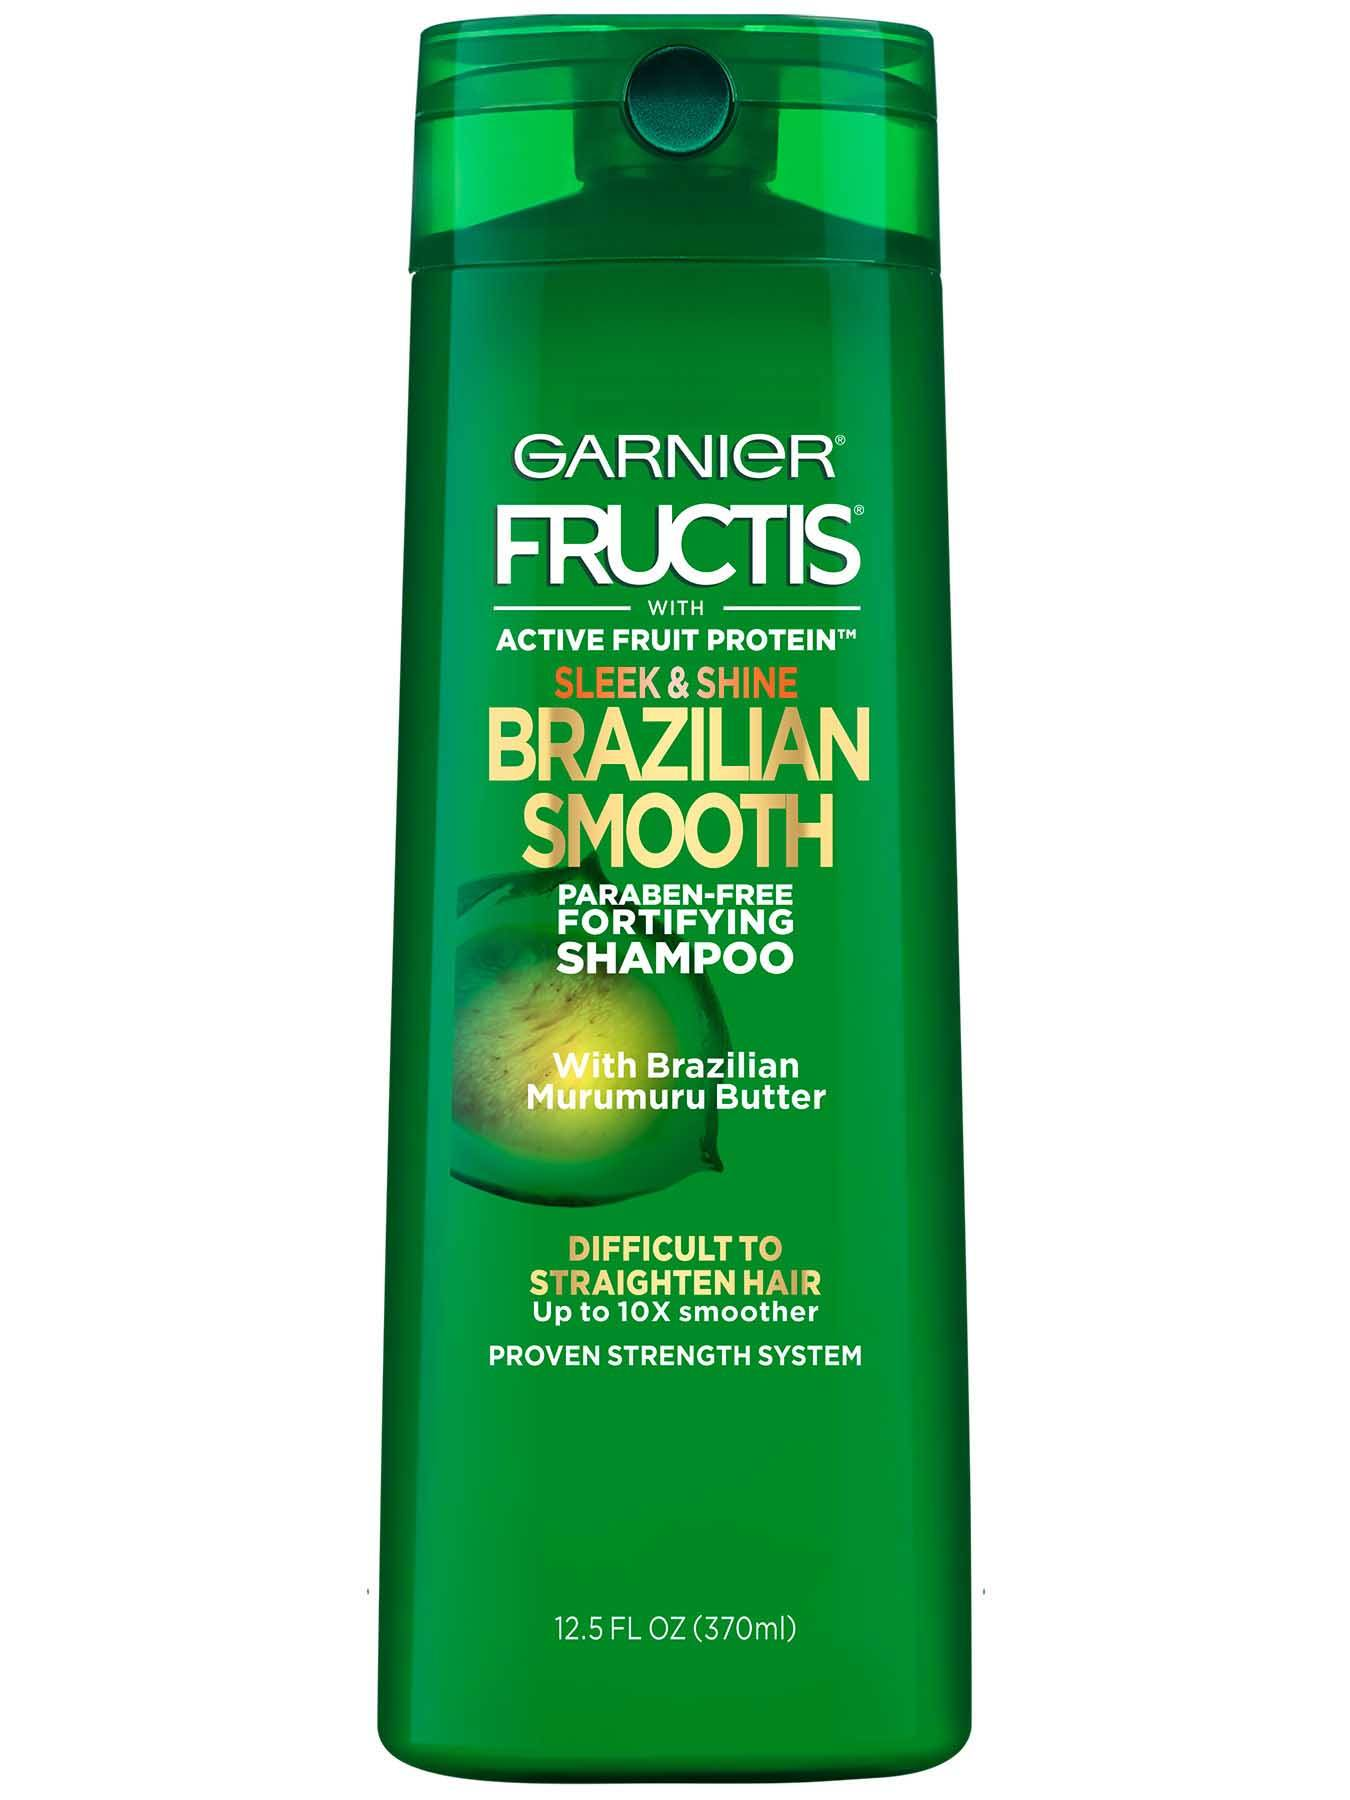 Garnier Fructis Sleek & Shine Brazilian Smooth Shampoo Front Of Bottle